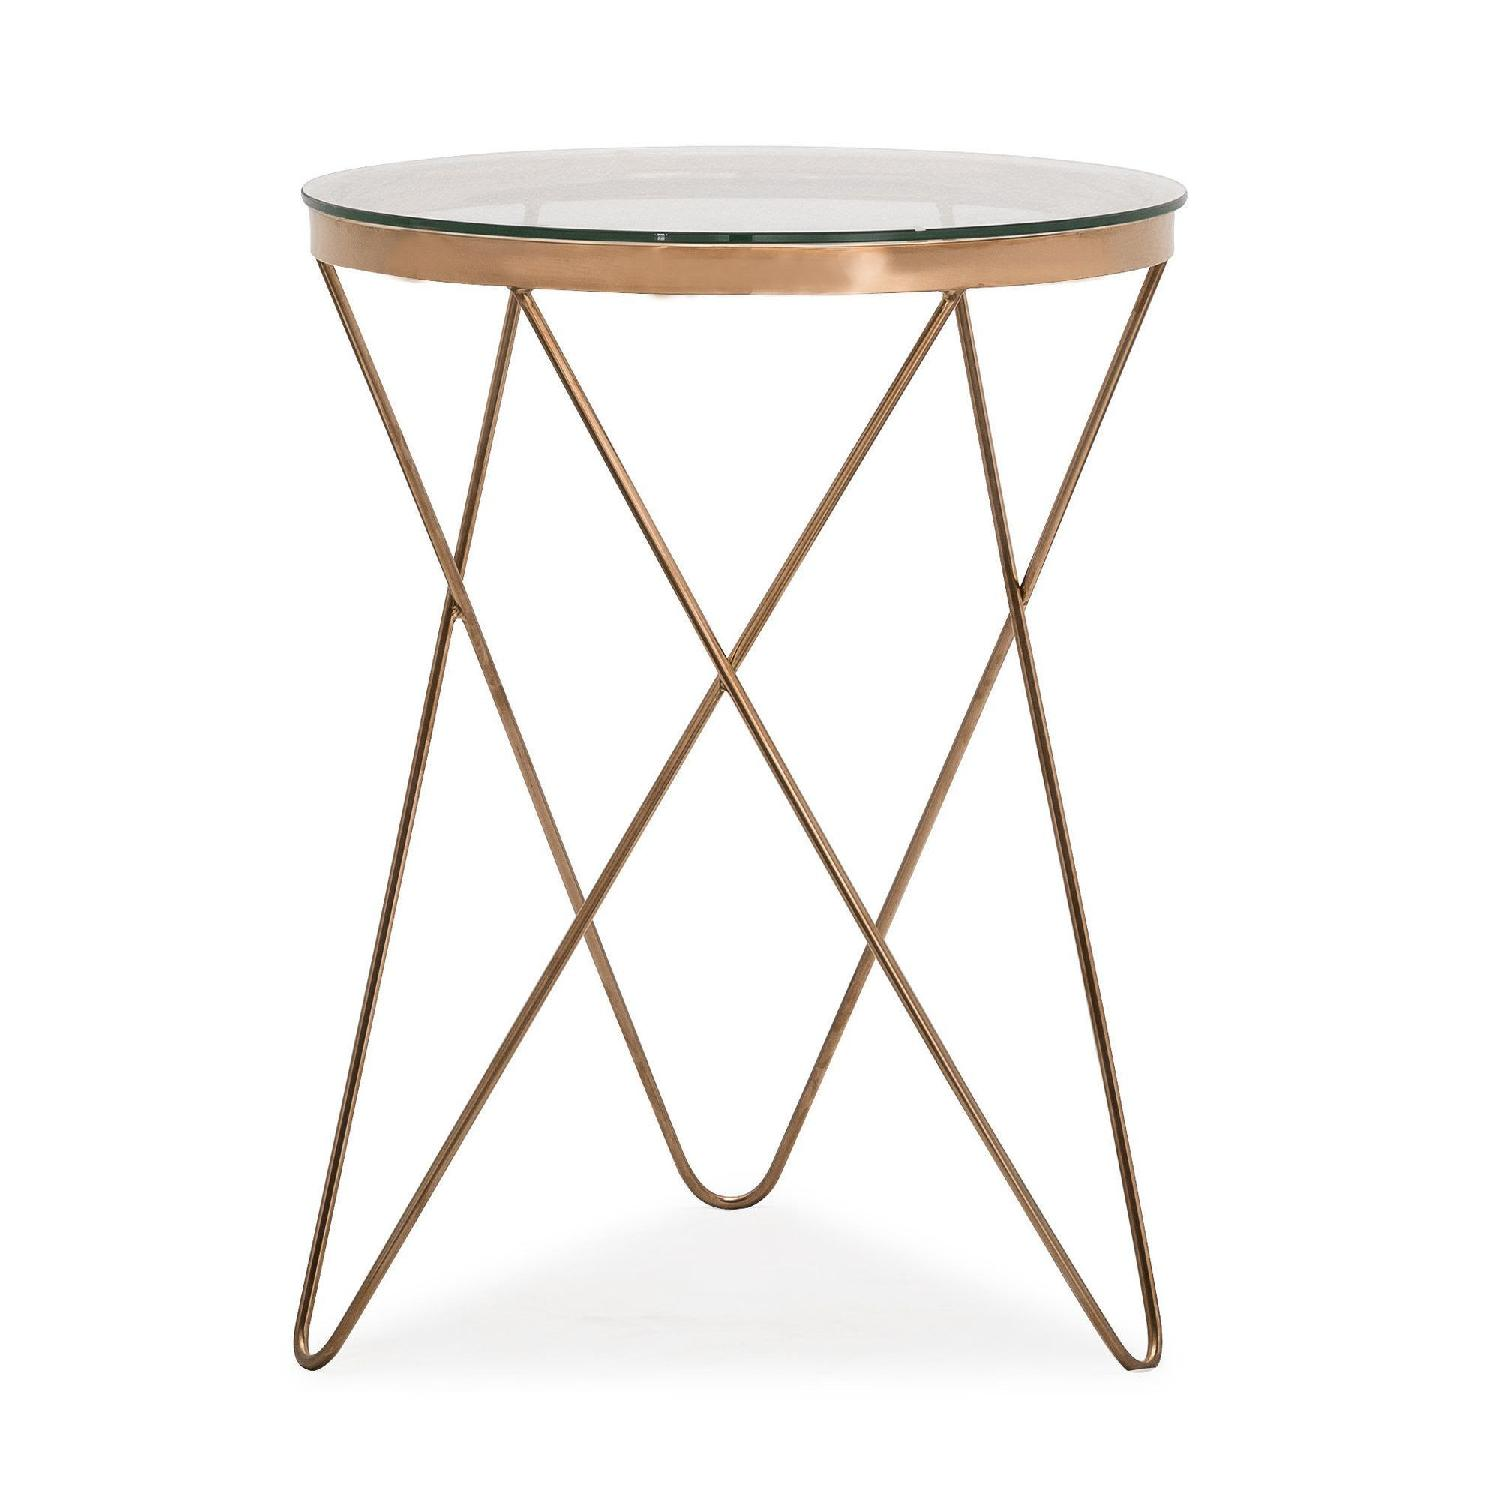 Round Rose Gold Metal Side Table w/ Glass Top - image-0